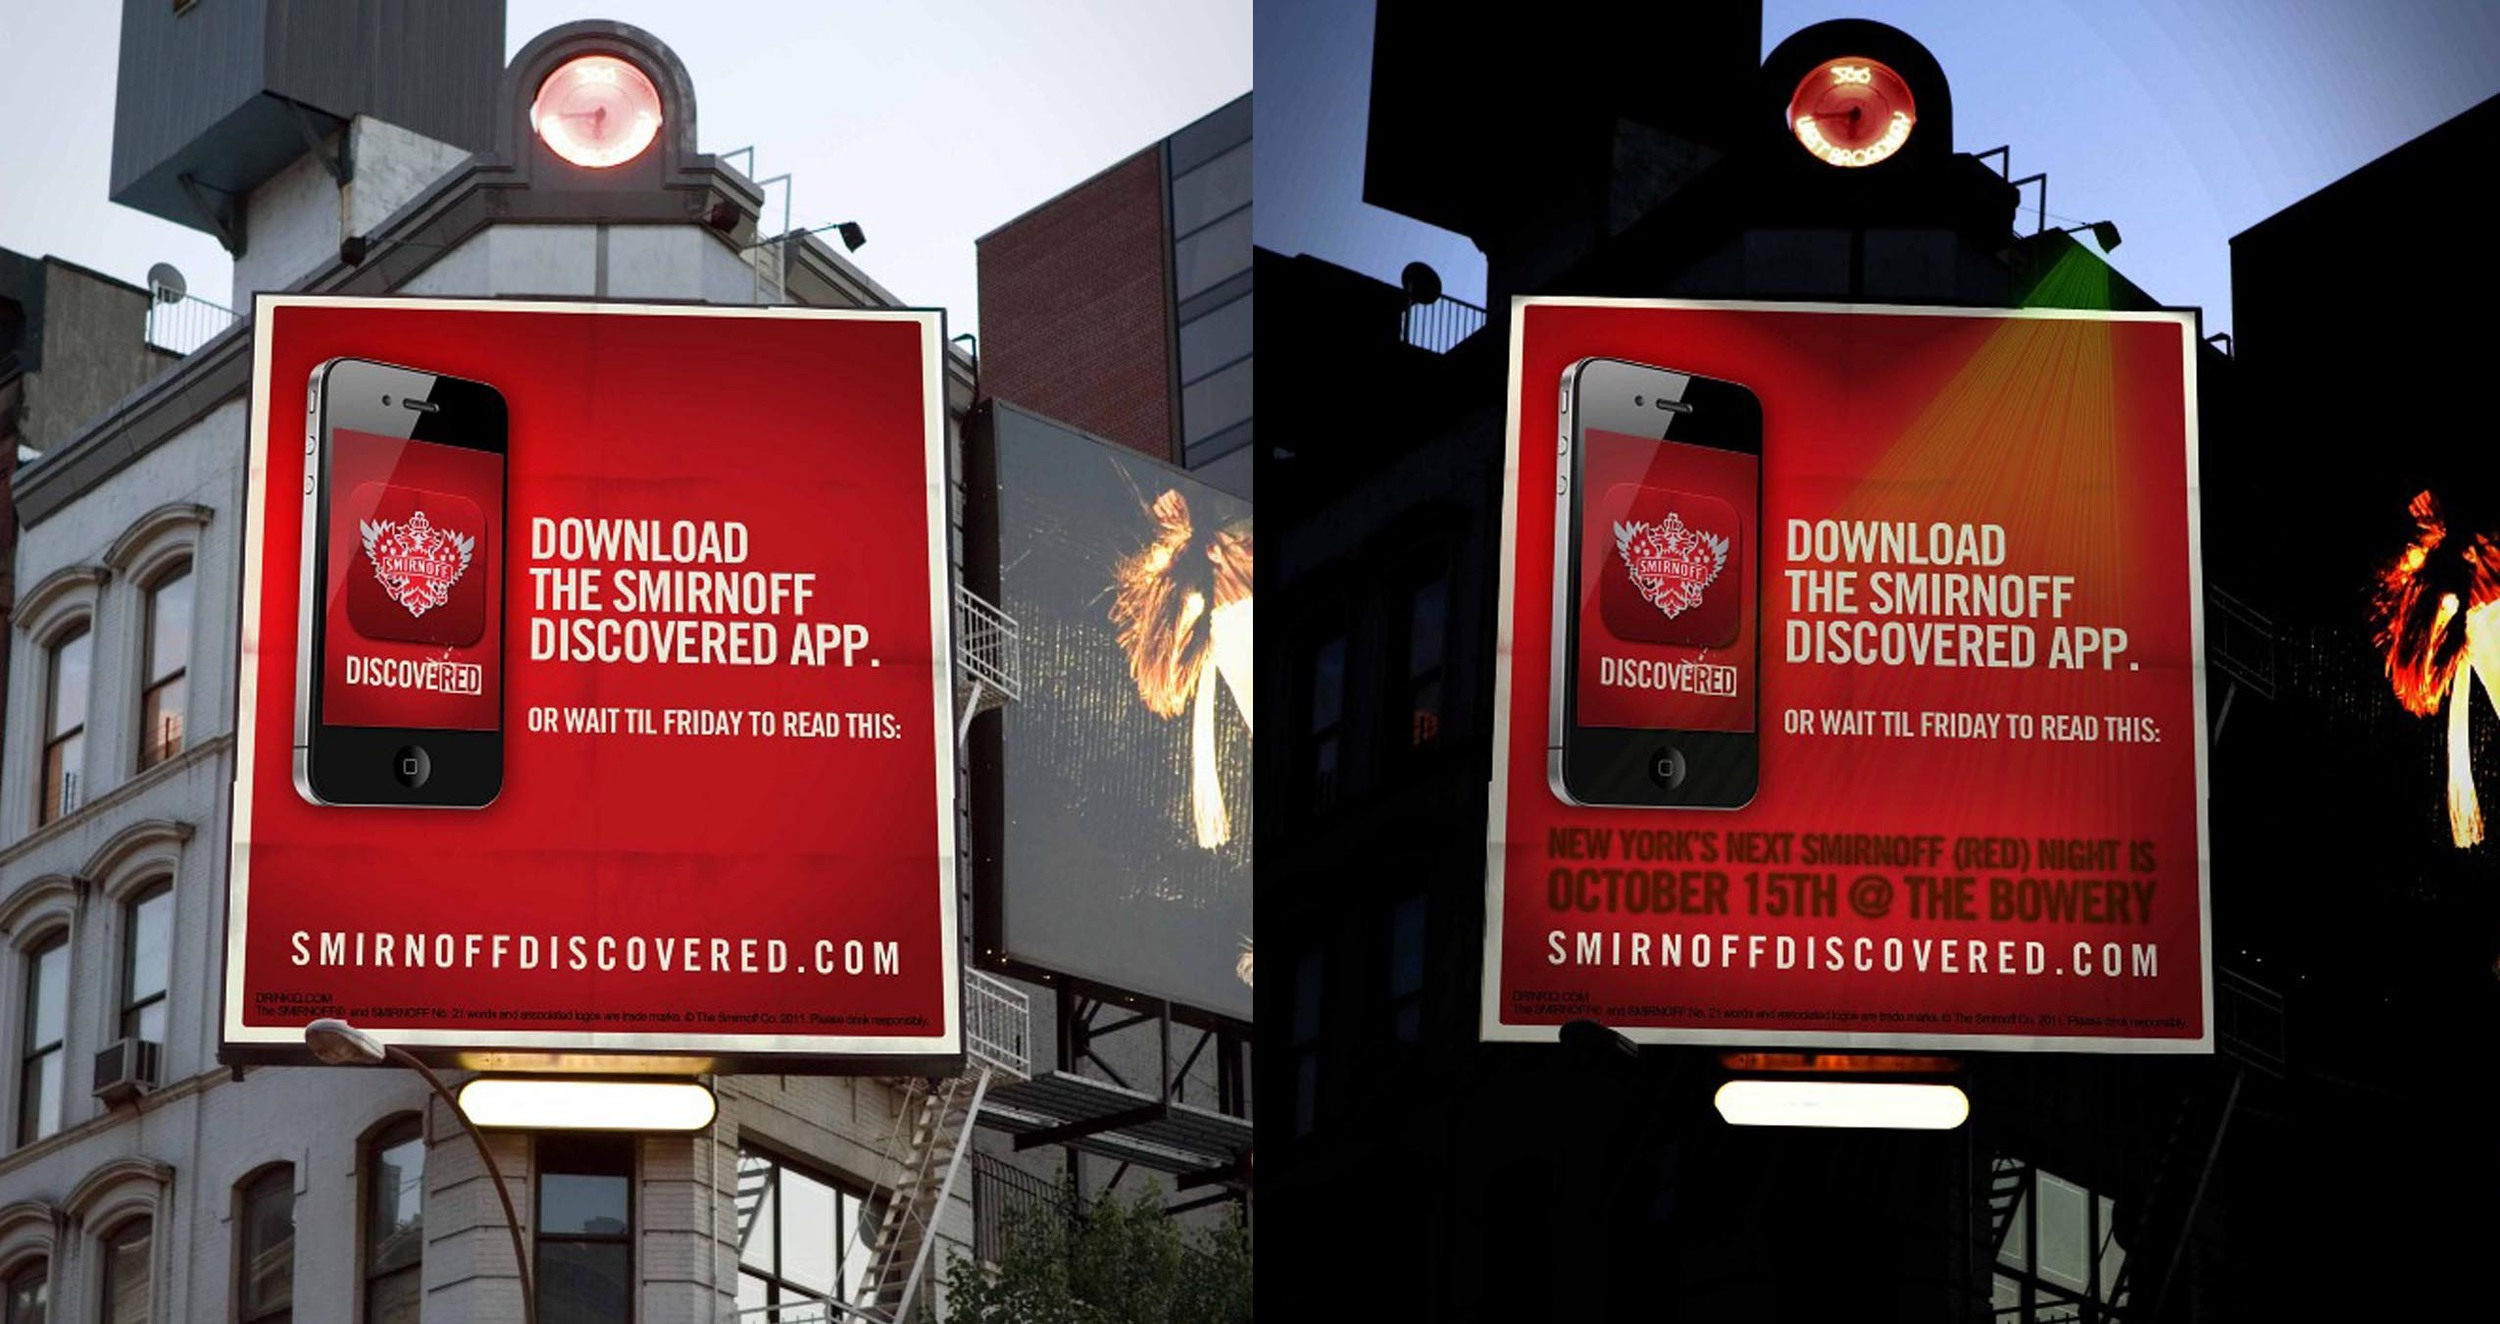 Download the app and use the (RED) filter to reveal a secret message on the billboard.